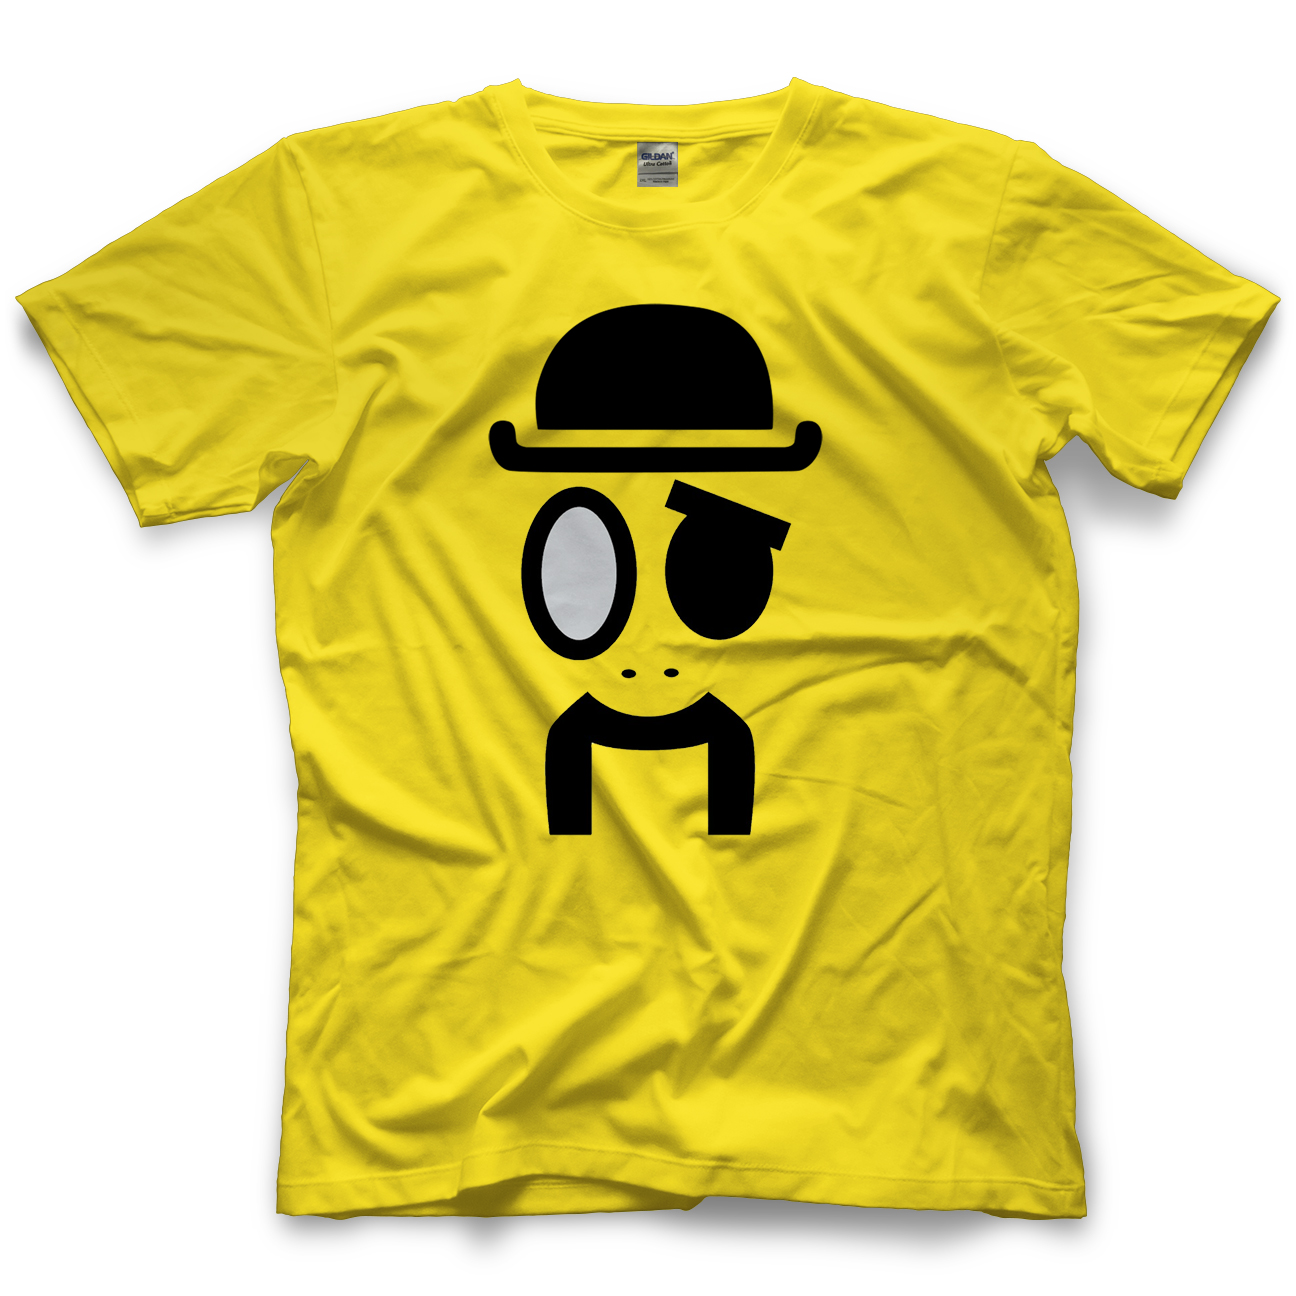 Jervis Cottonbelly Silly Face T-shirt